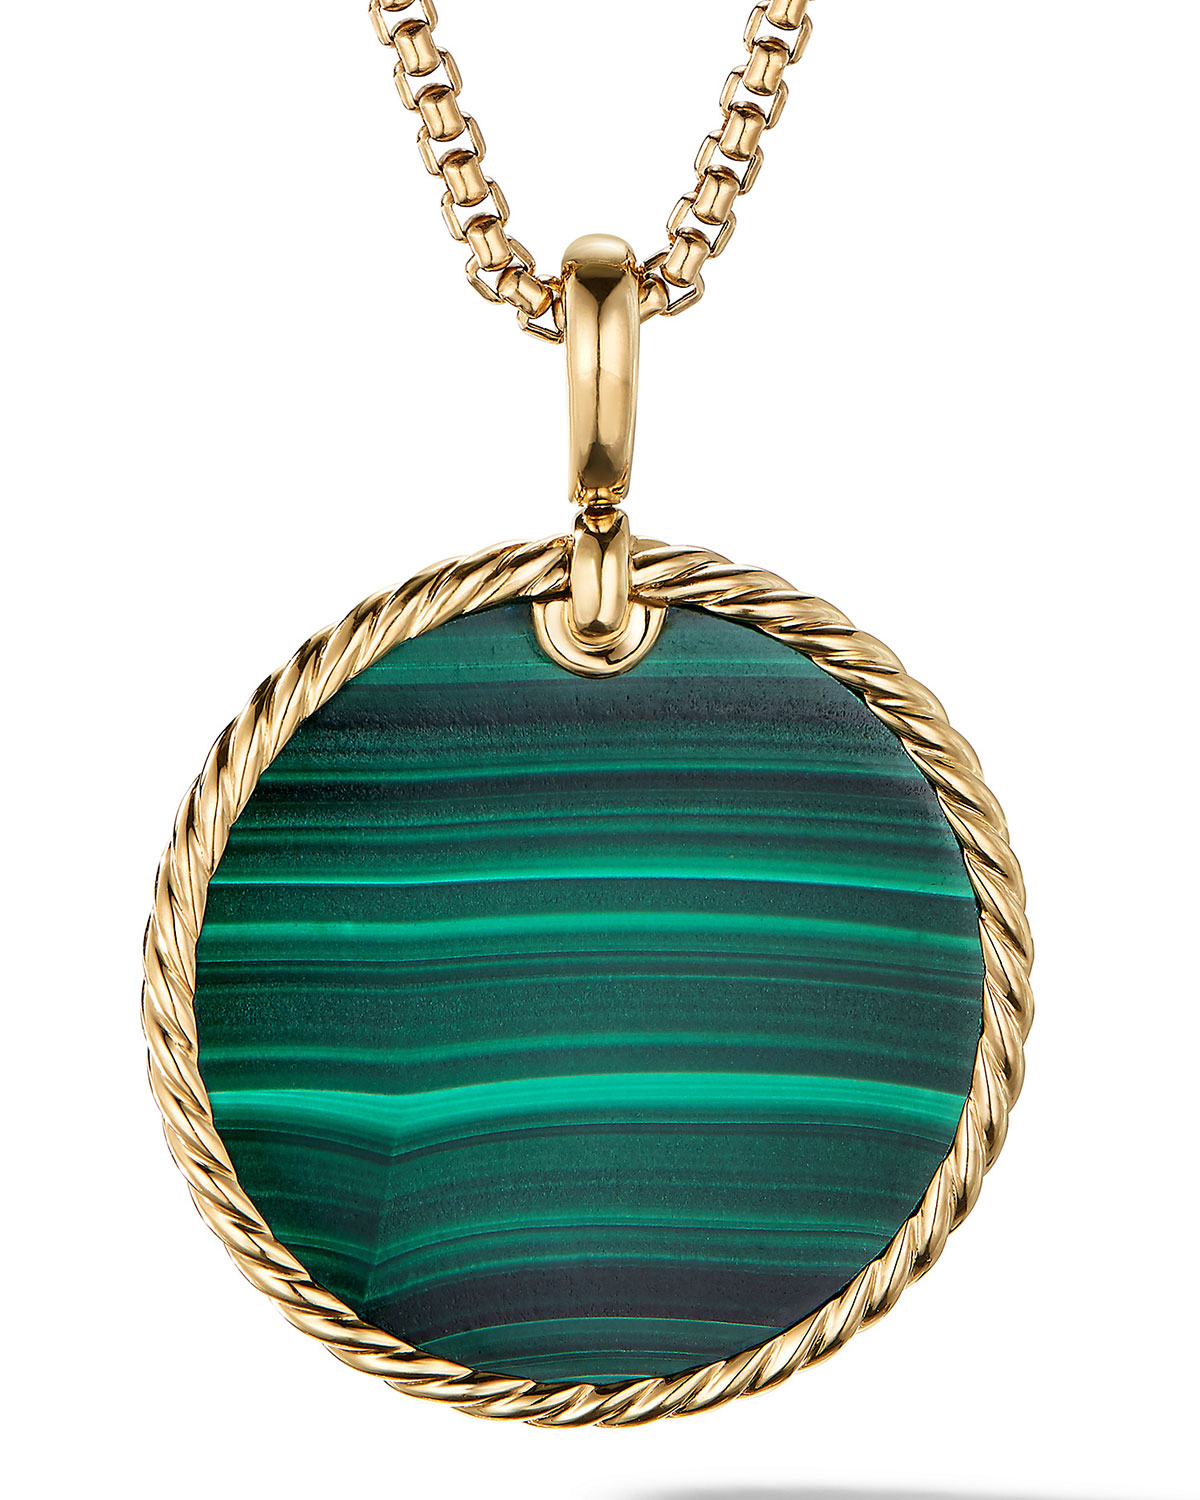 David Yurman Accessories DY ELEMENTS DISC PENDANT IN 18K YELLOW GOLD WITH MALACHITE